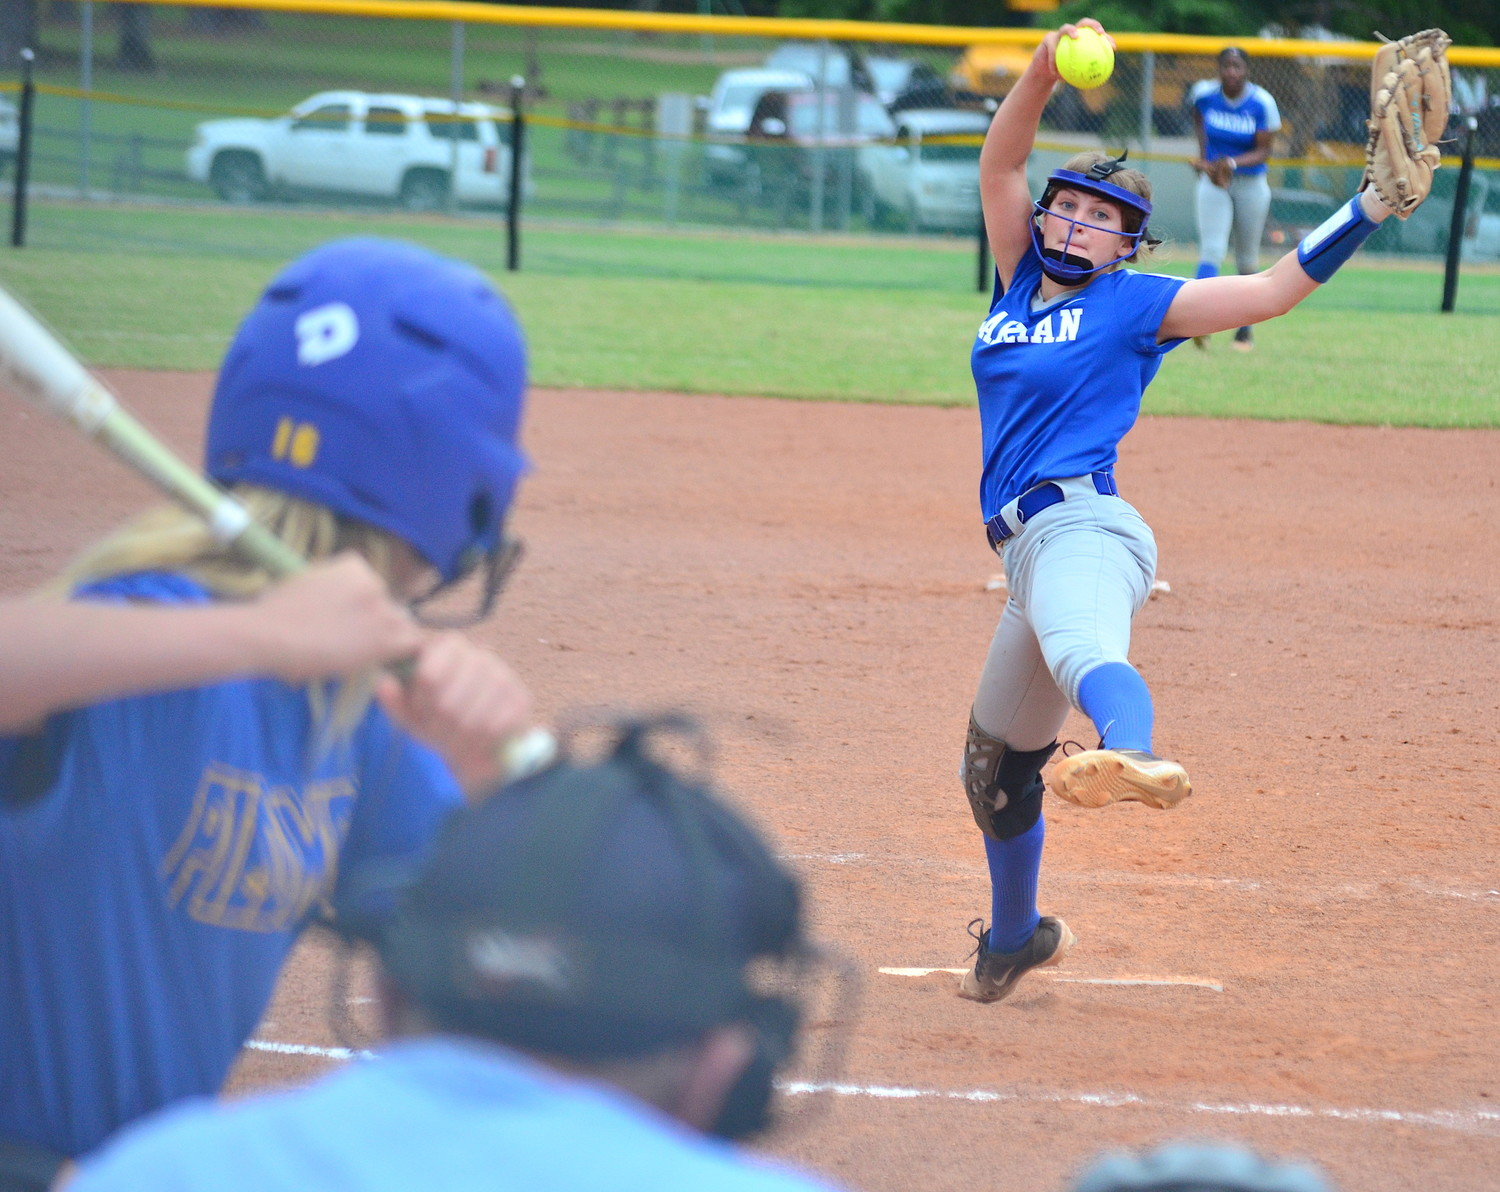 Oakman's Katelyn Makemson throws a pitch to a Piedmont batter during their game on Thursday. The Wildcats are one win away from a state tournament berth.